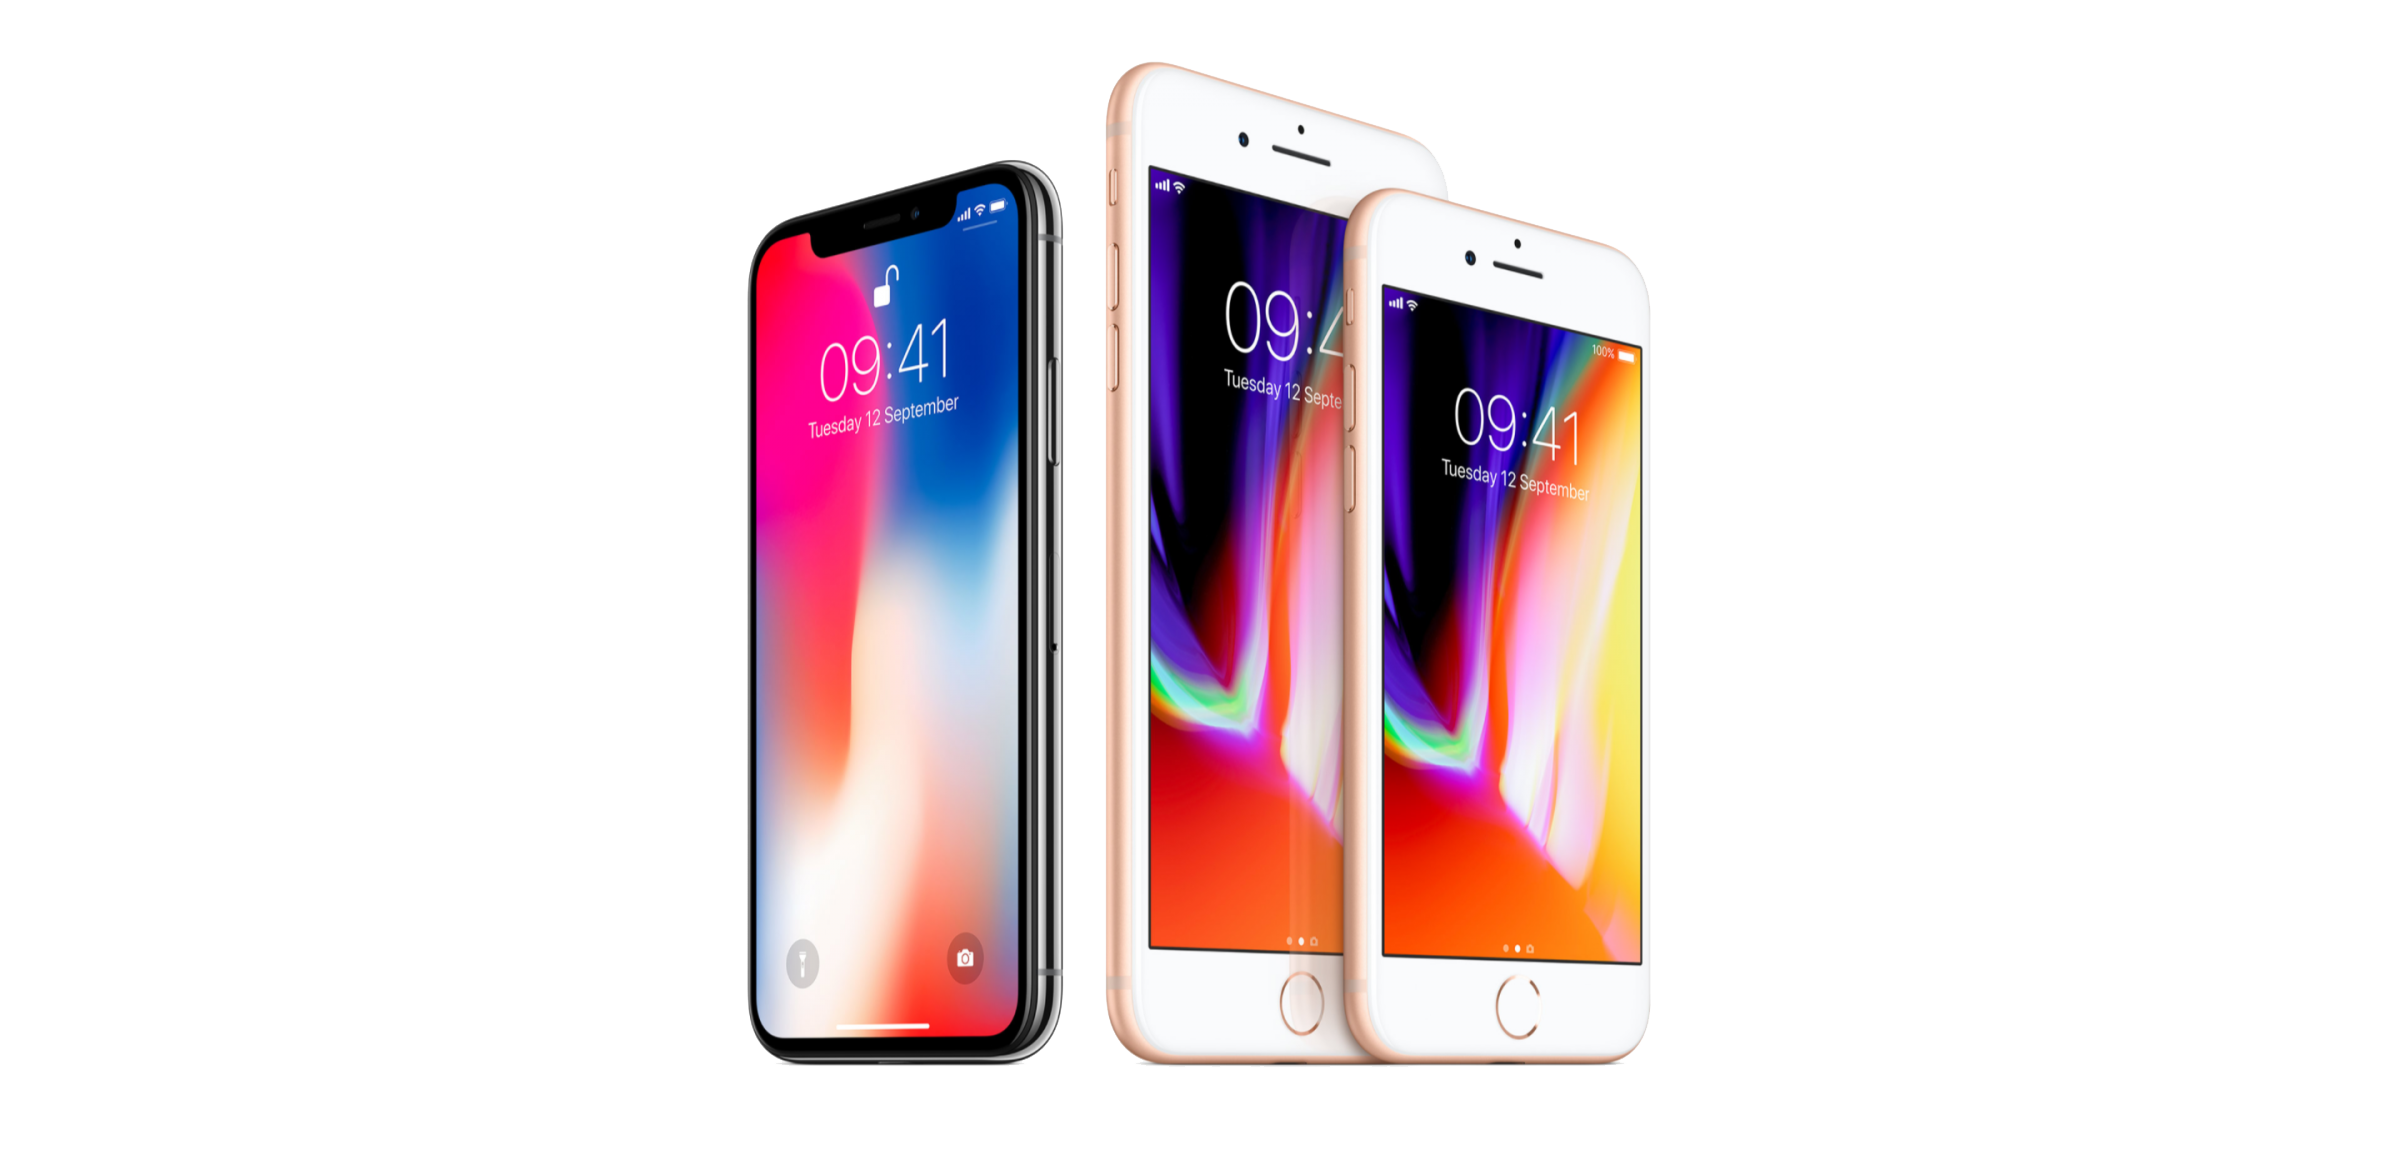 Iphone X 8 8 Plus Png.